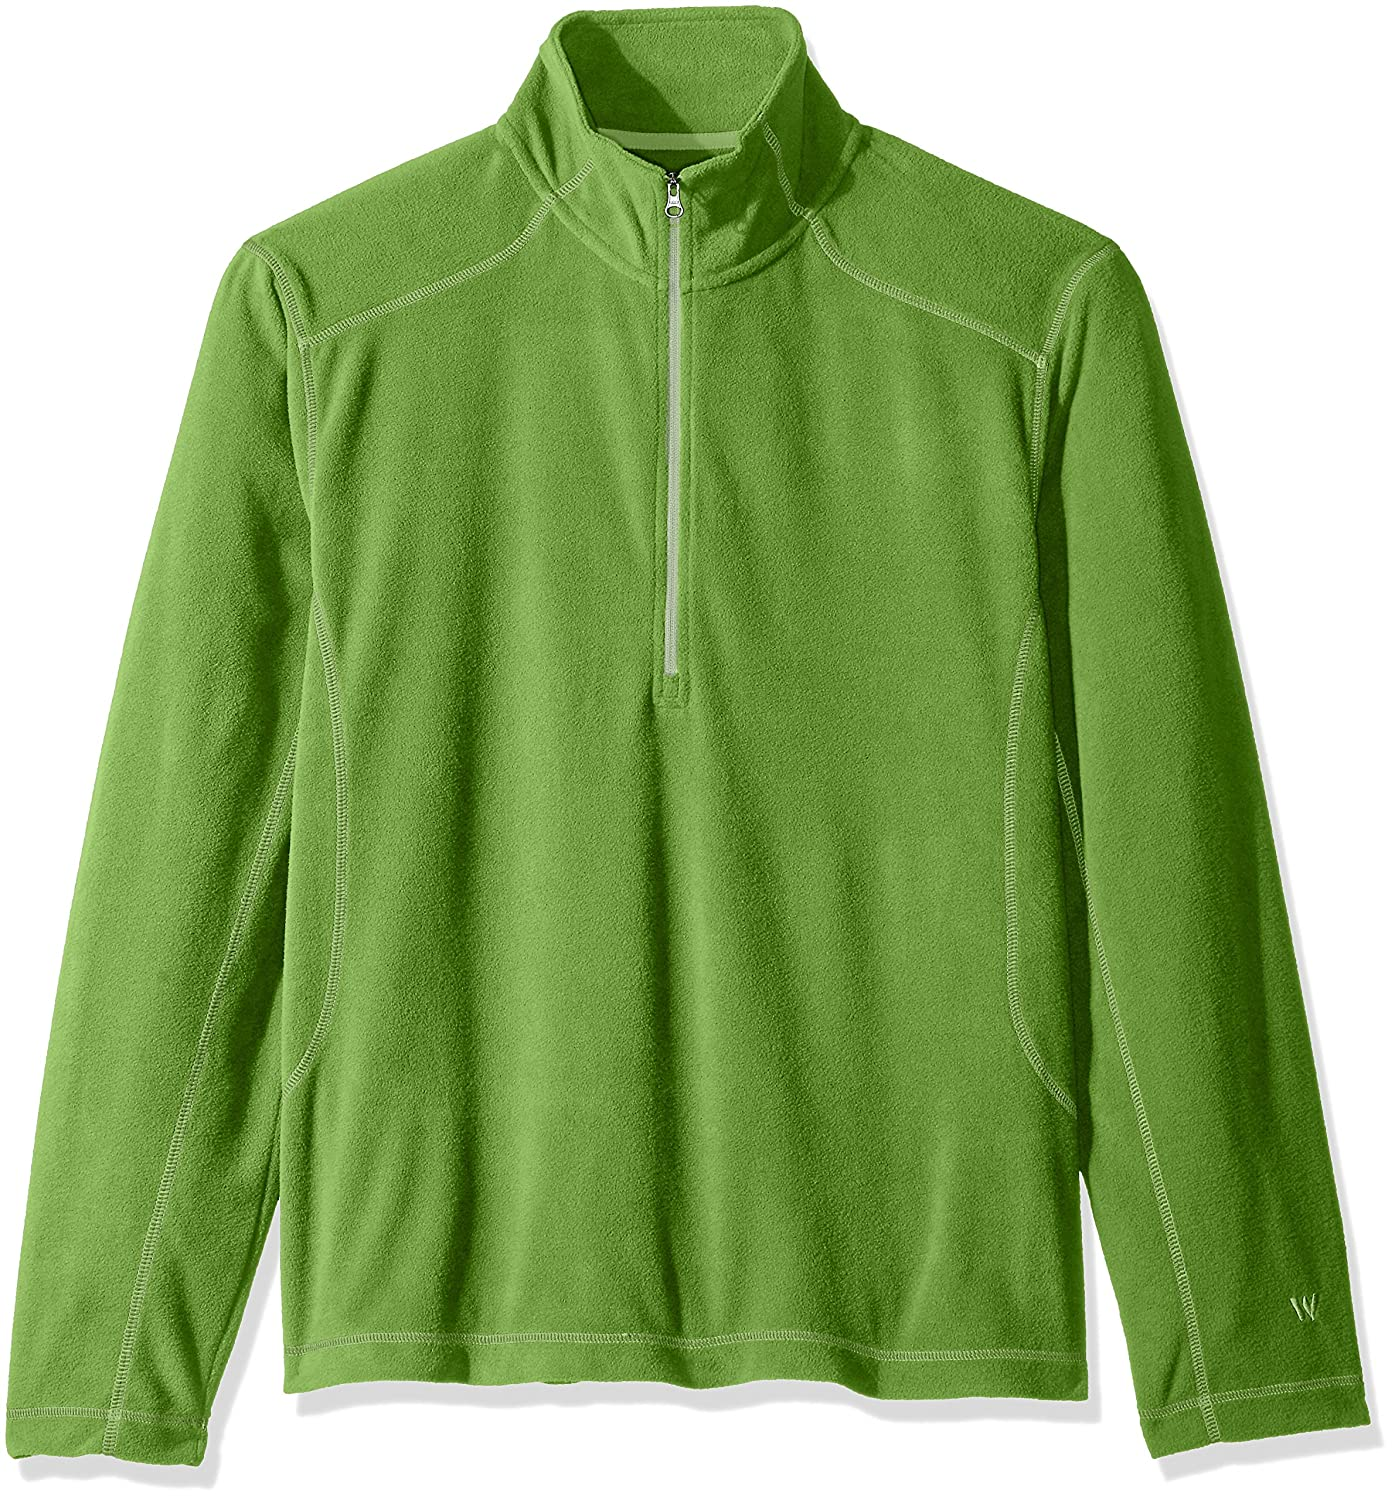 North Face Men's TKA 100 Glacier Quarter Zip - hiking clothing